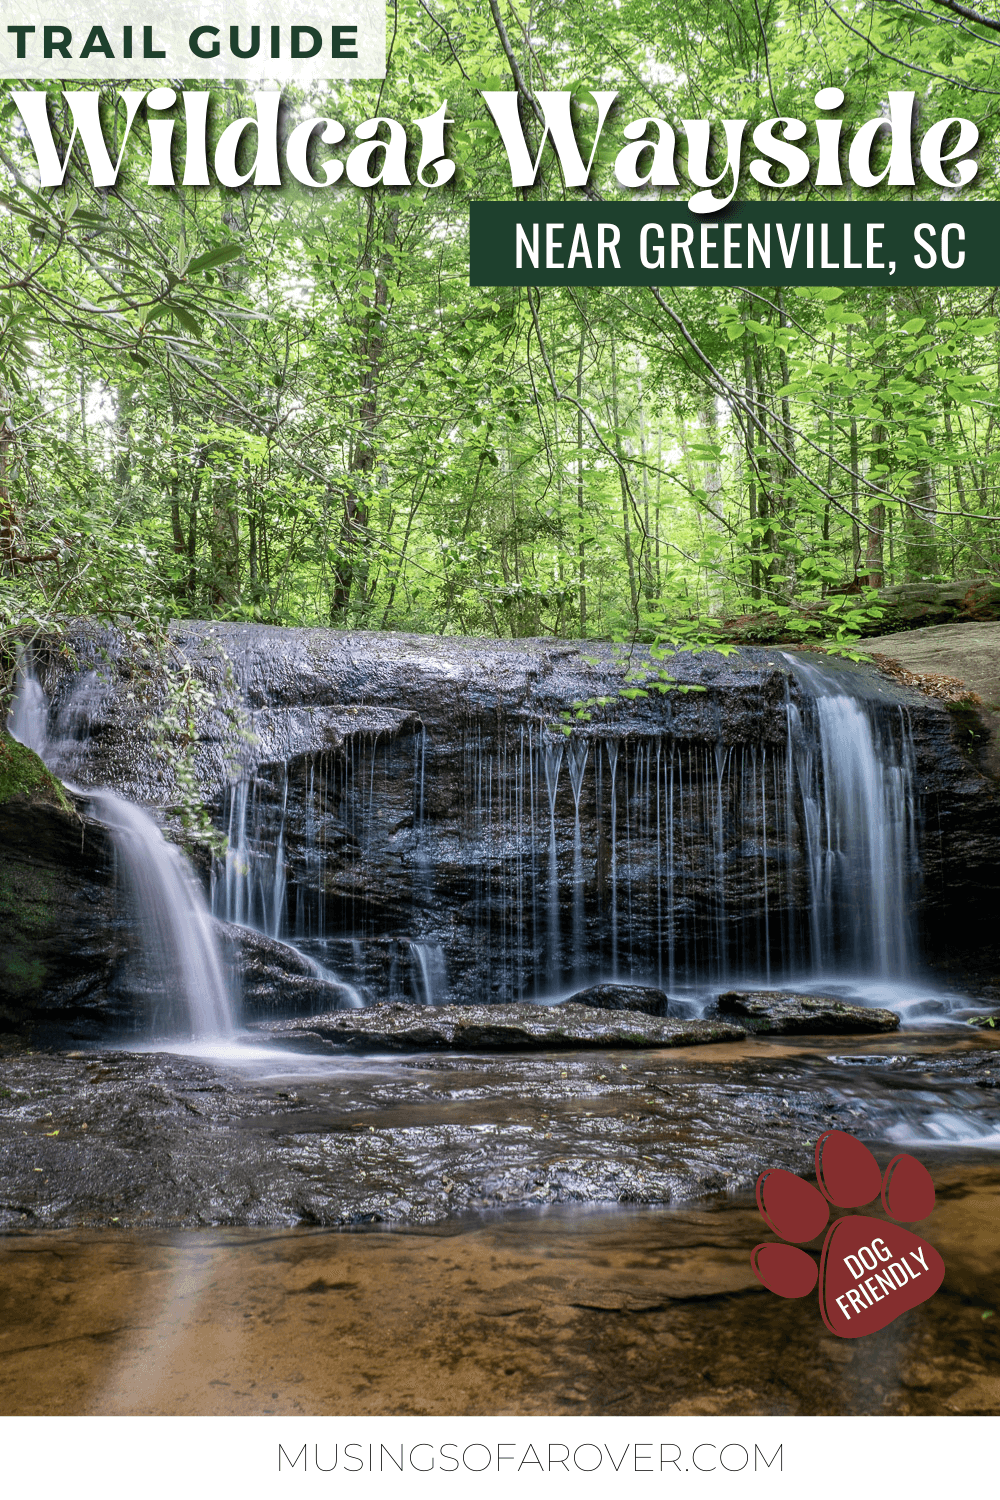 This popular roadside stop along the Cherokee Scenic Highway will take you to 3 waterfalls along this easy 1 mile loop hike. During the warmer months, go for a dip in the natural pool and feel the spray of the waterfall.